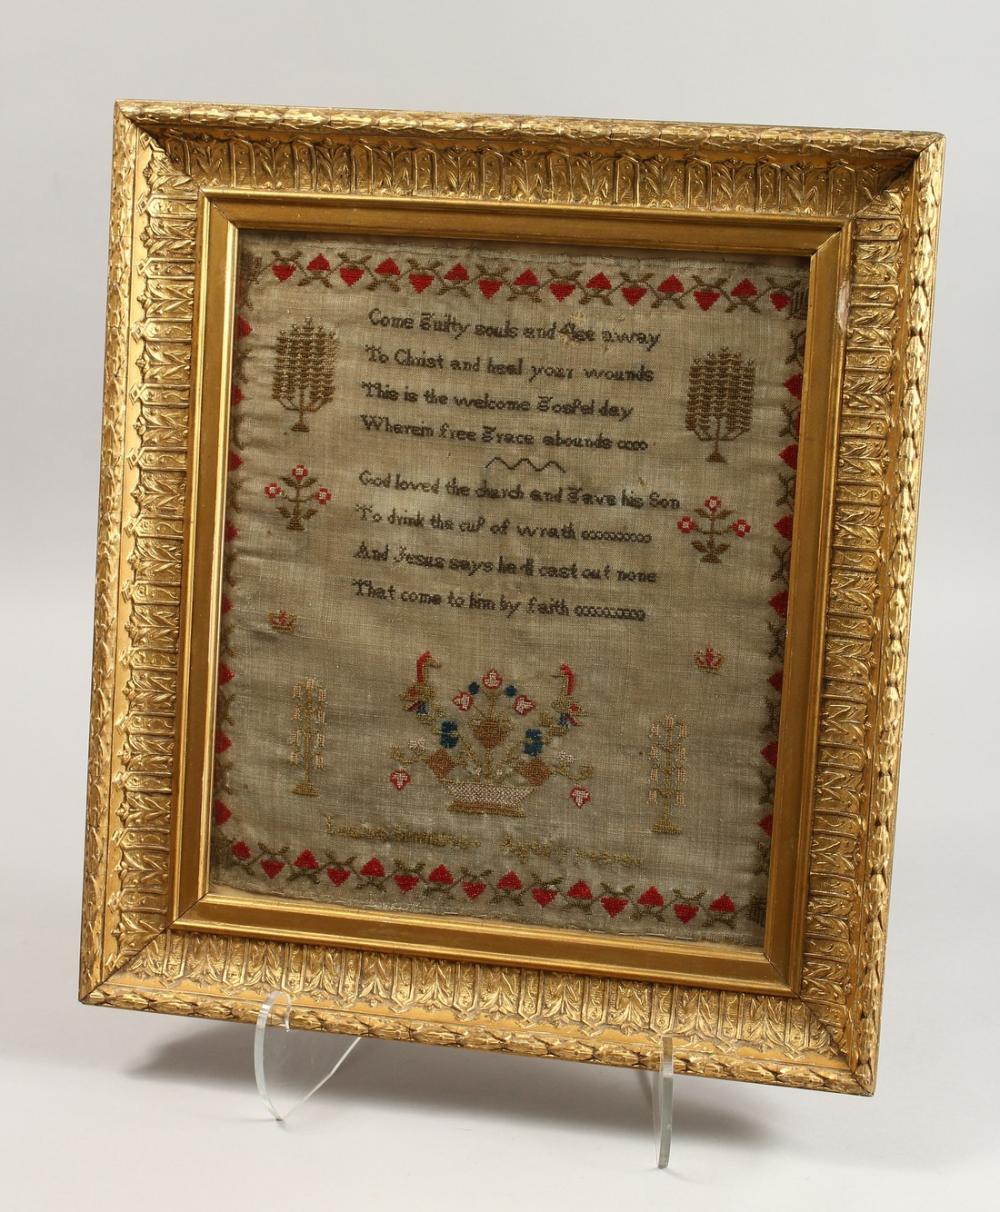 A GOOD SAMPLER in a gilt frame by LOUISE SIMONS, AGE SEVEN. 14.5ins X 12ins.